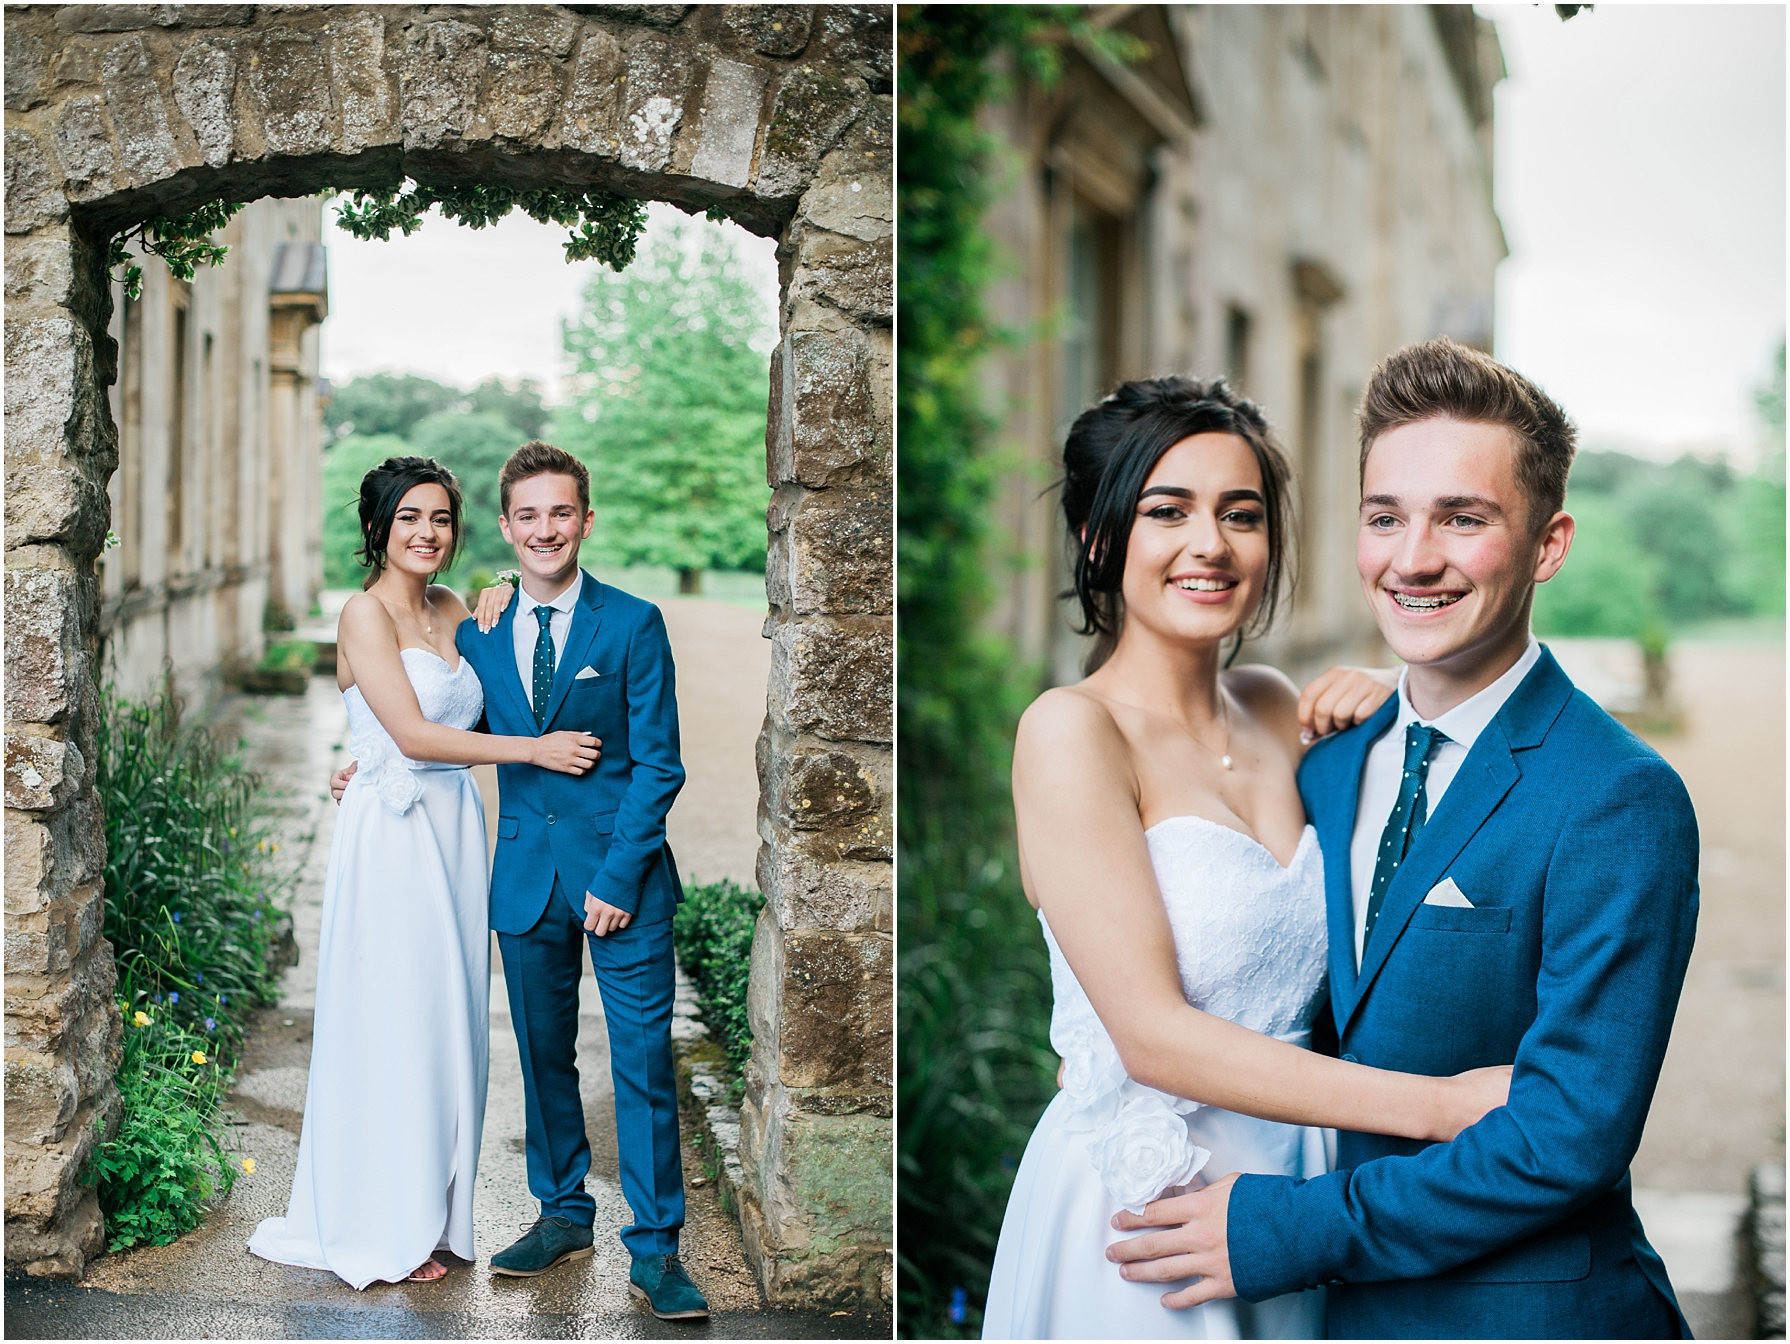 prom photography at Lydiard park in swindon